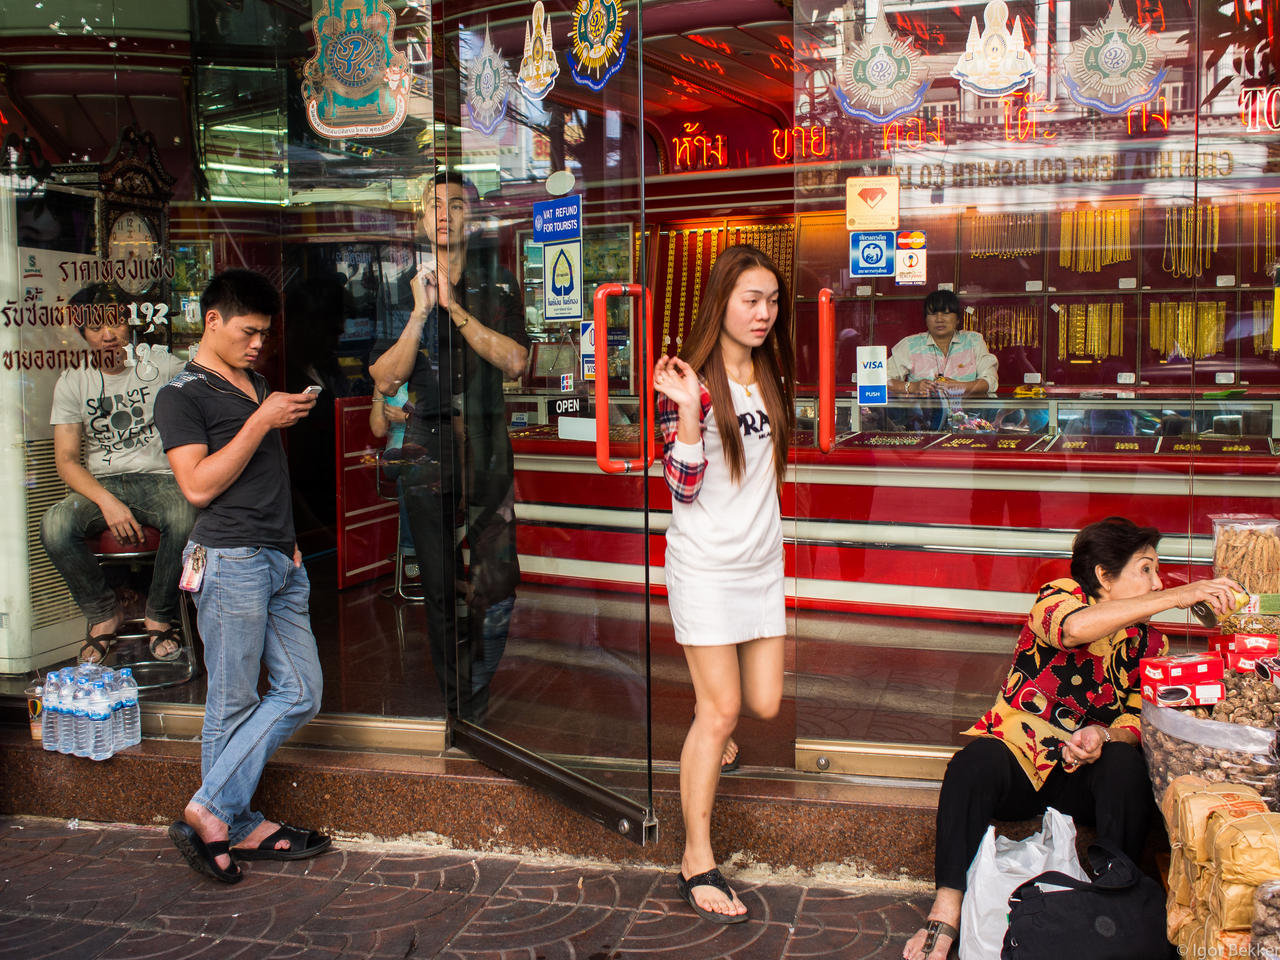 PH_011714_04 by IgorBekker